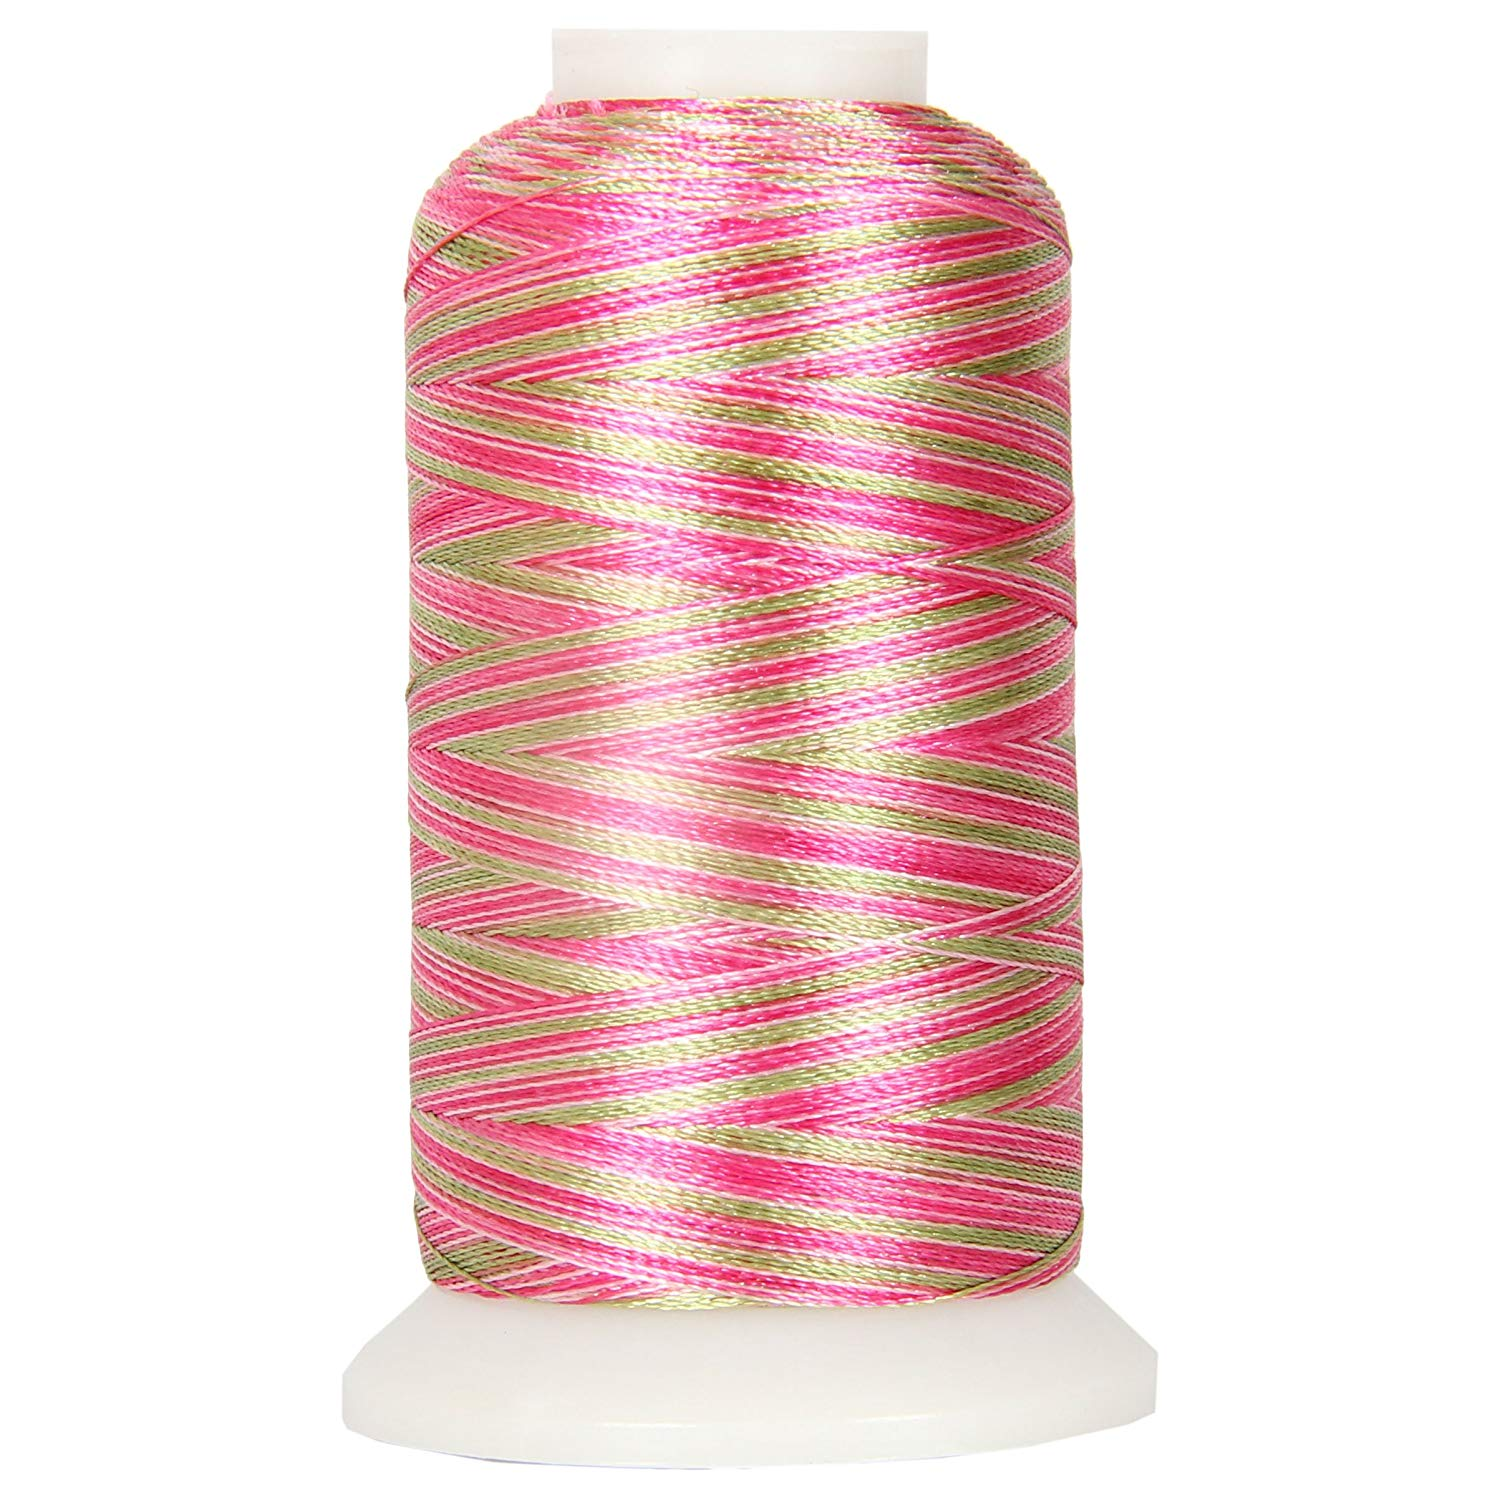 40WT POLYESTER MACHINE EMBROIDERY THREAD SET 20 PINK//BLUE COLORS 1000M CONES